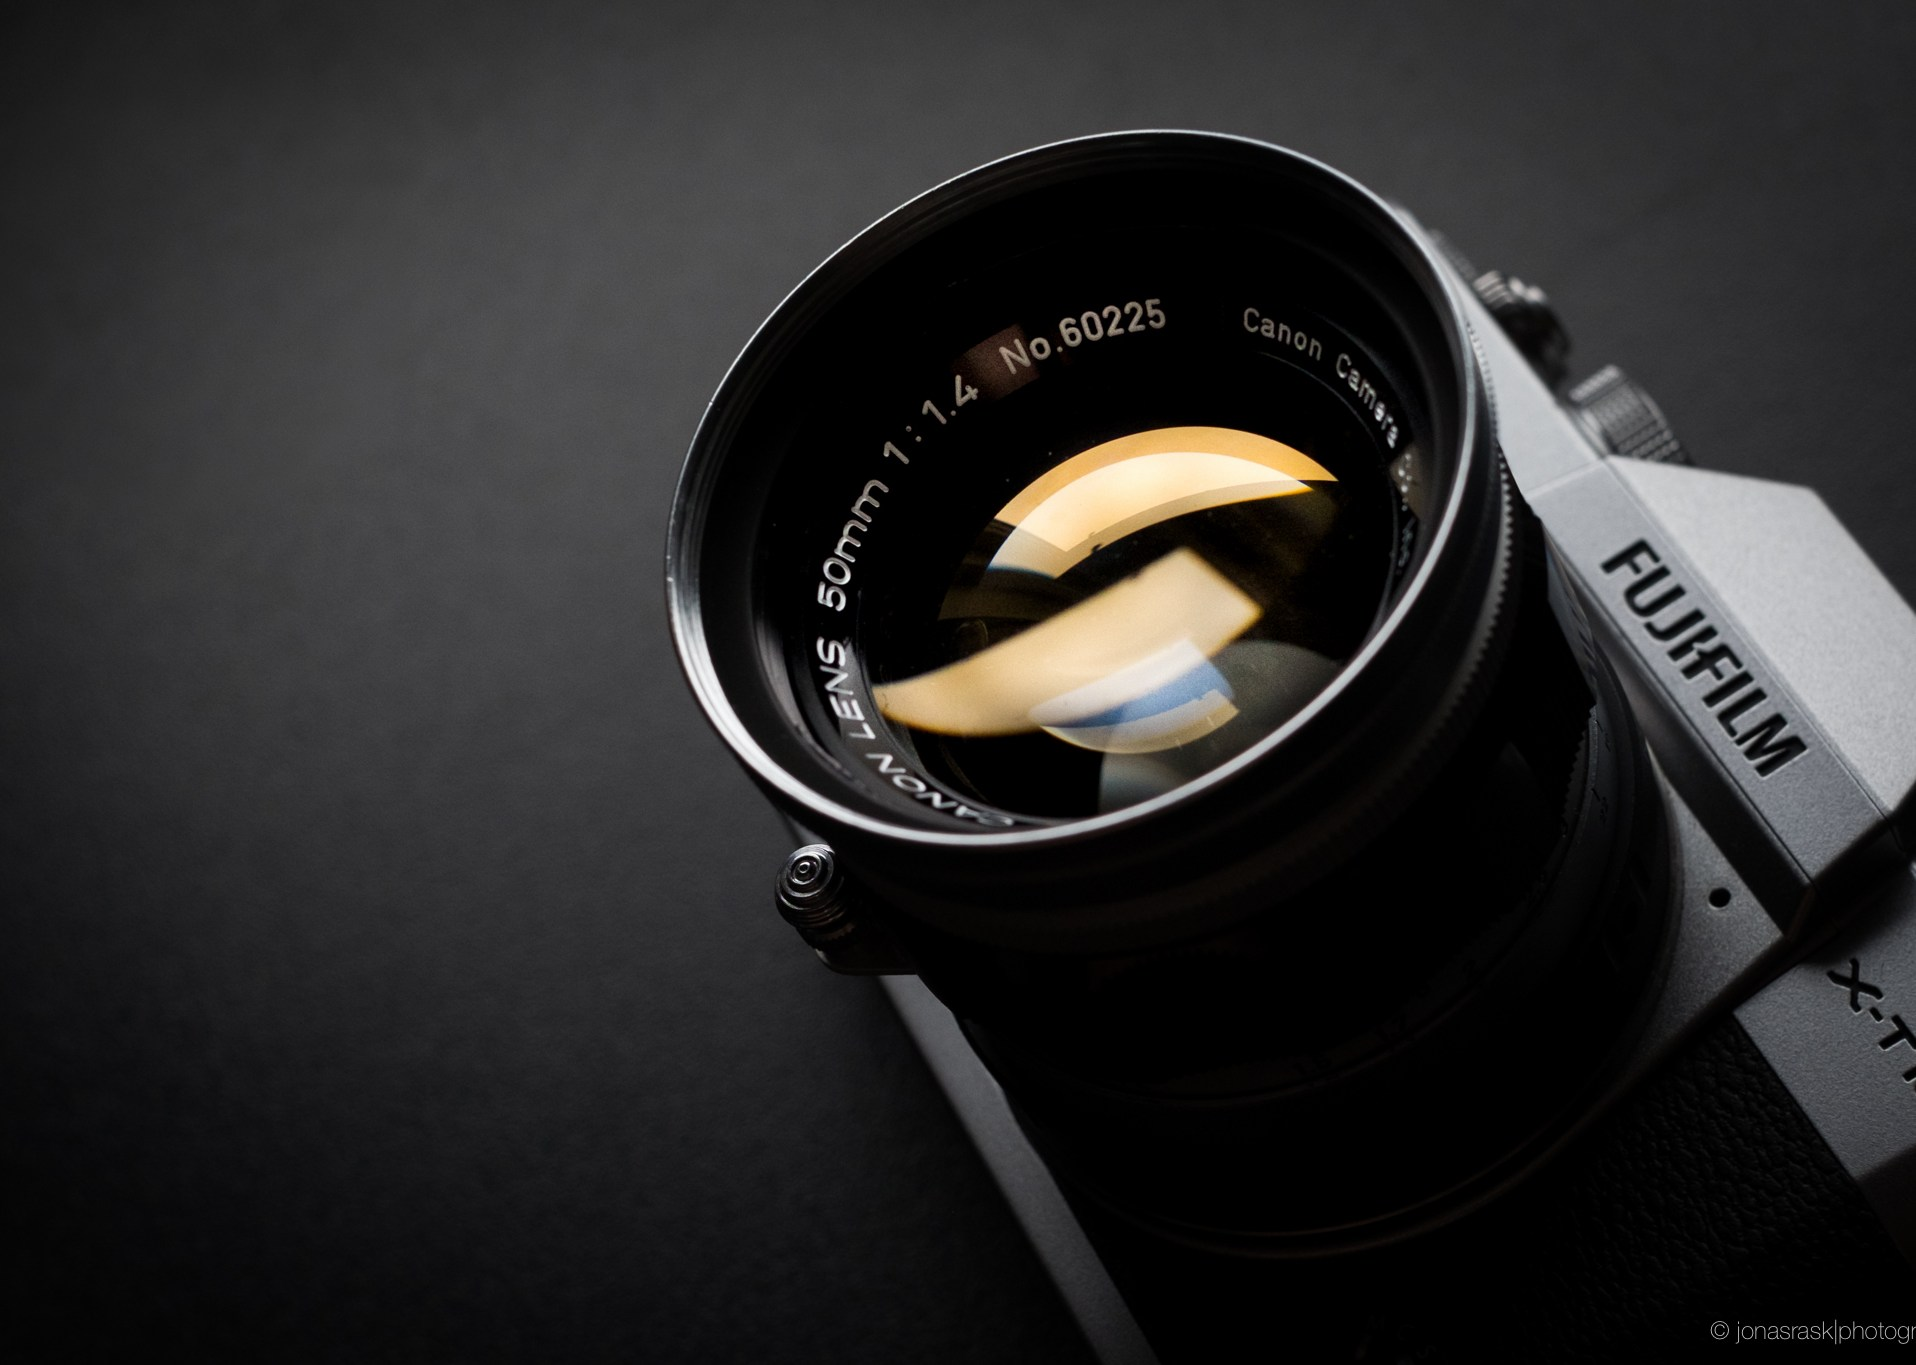 The Canon 50mm f/1 4 LTM review – jonasrask|photography